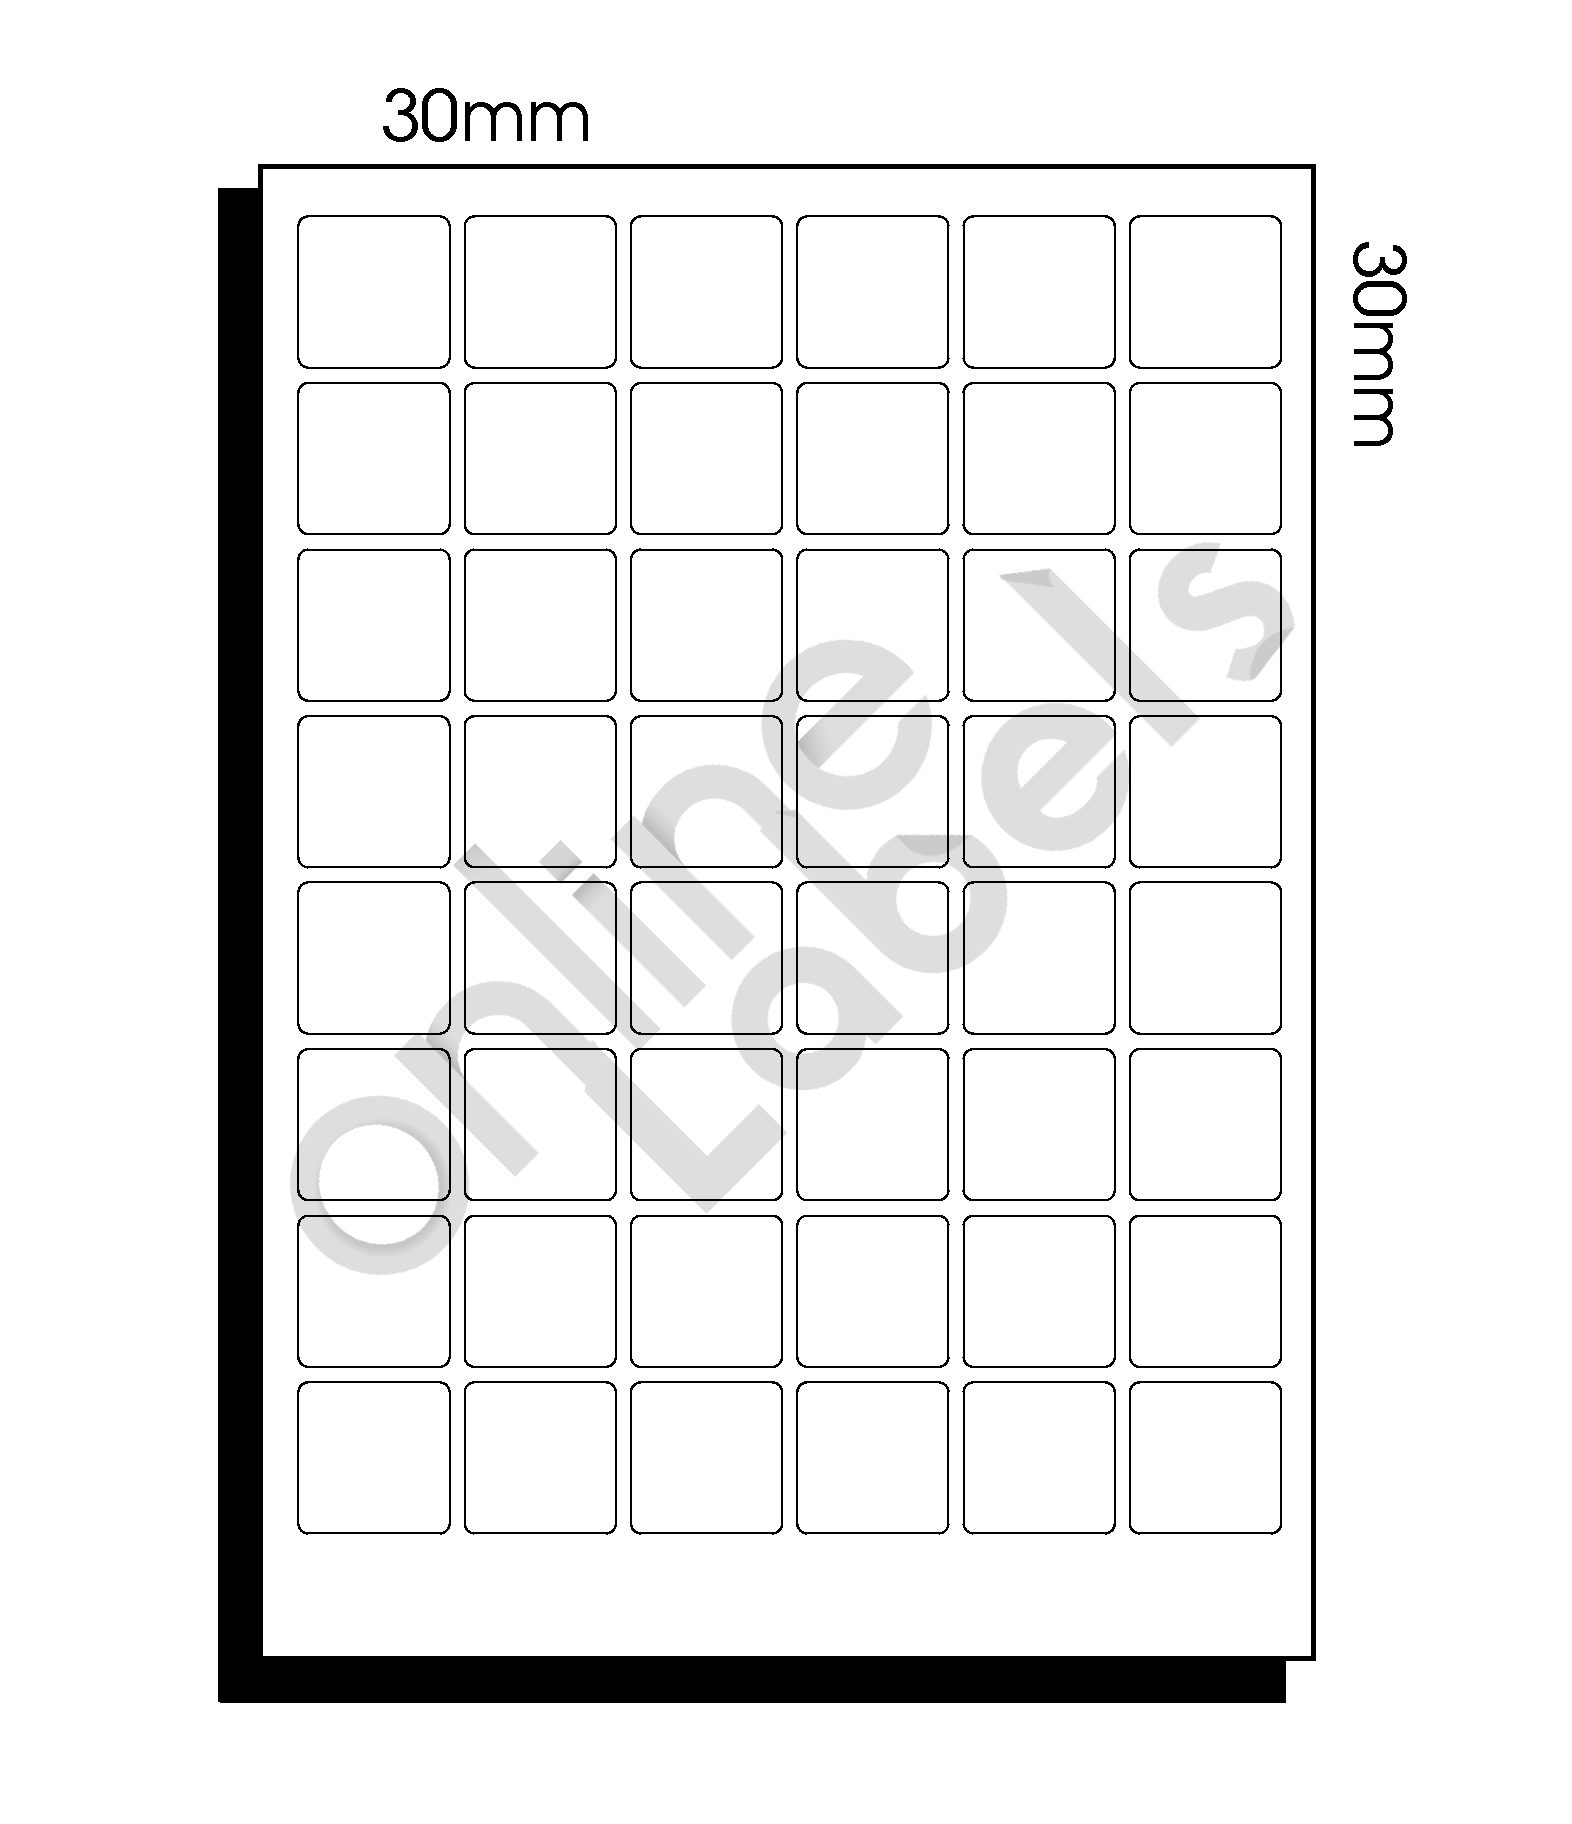 30mm x 30mm (059) – 48 Labels per Sheet